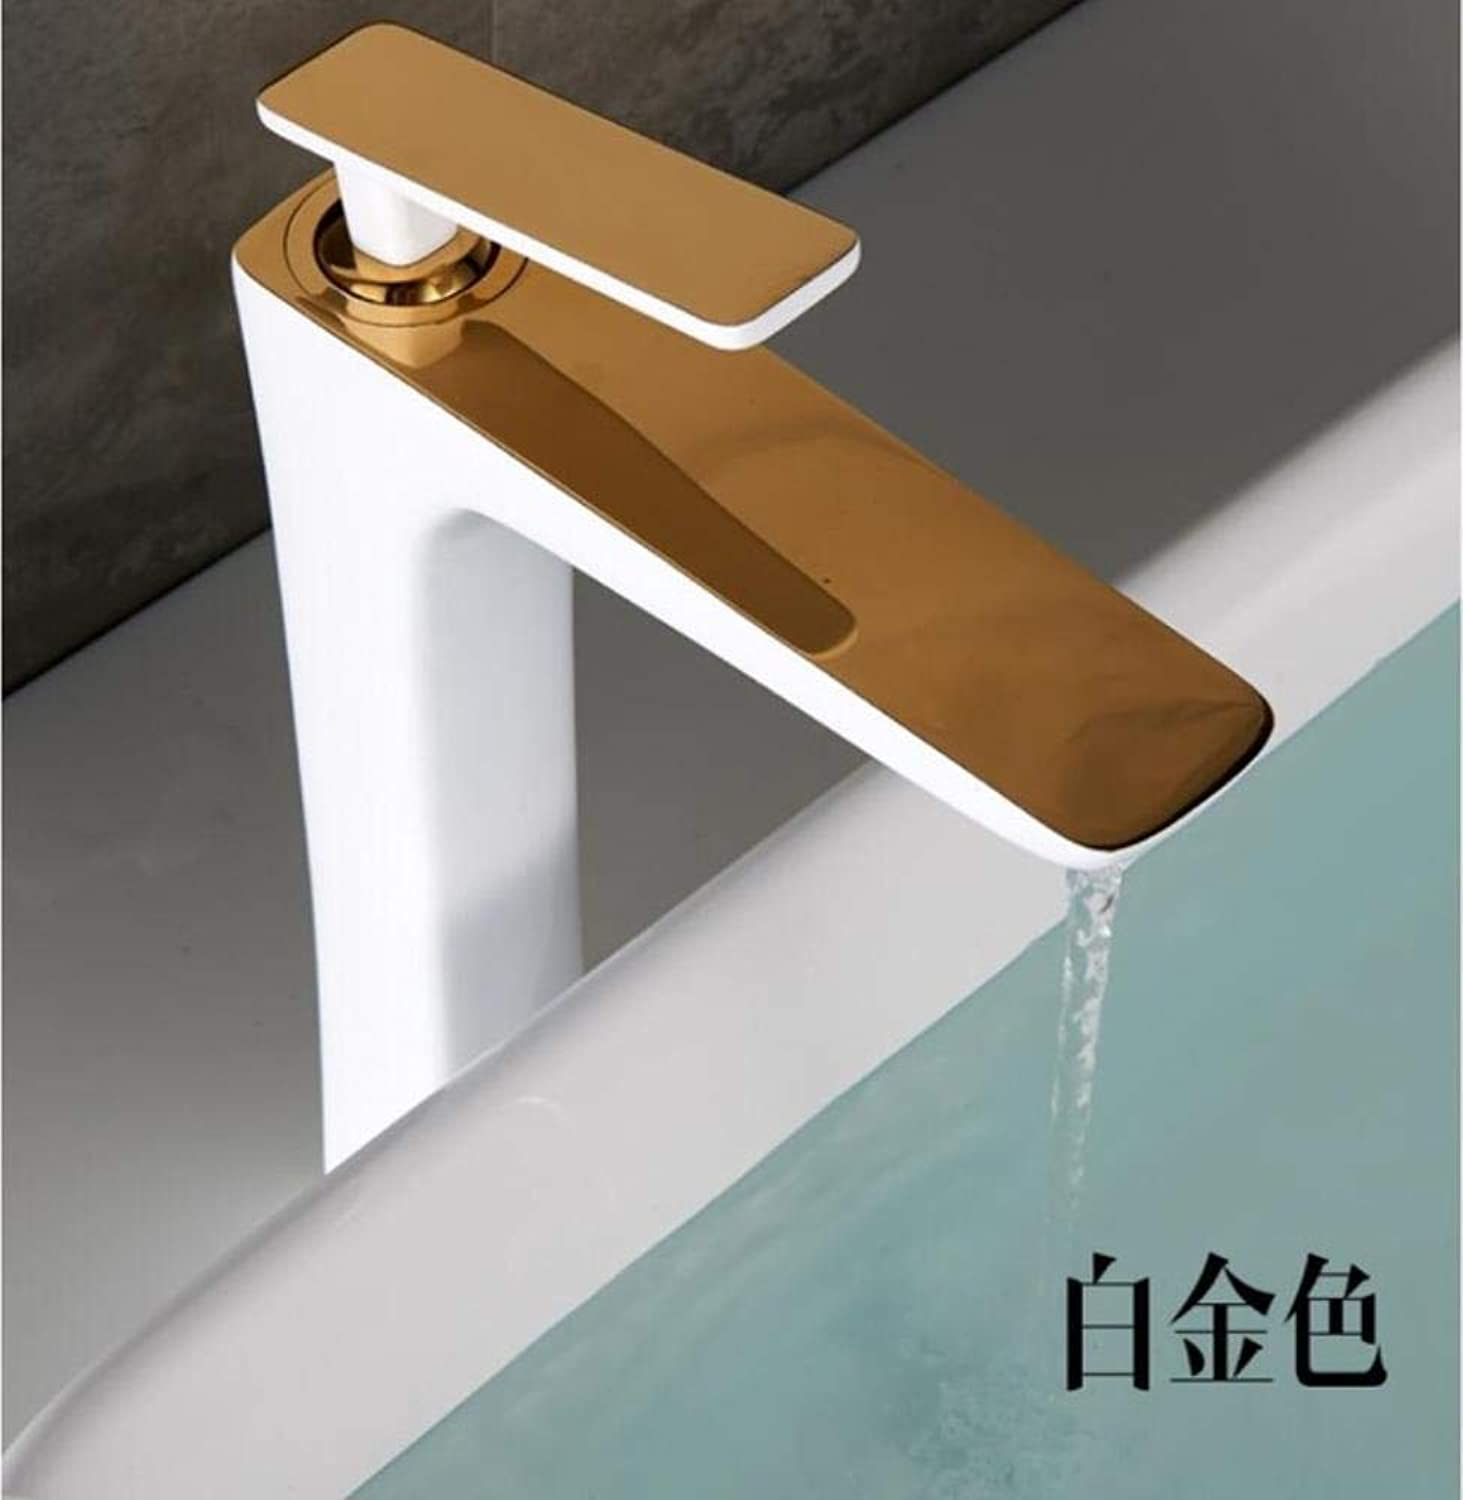 Kai&Guo Basin Faucet Black White Basin Mixer Brass Crane Bathroom Faucets Hot and Cold Water Mixer Tap Contemporary Mixer Tap torneira,gold white tall